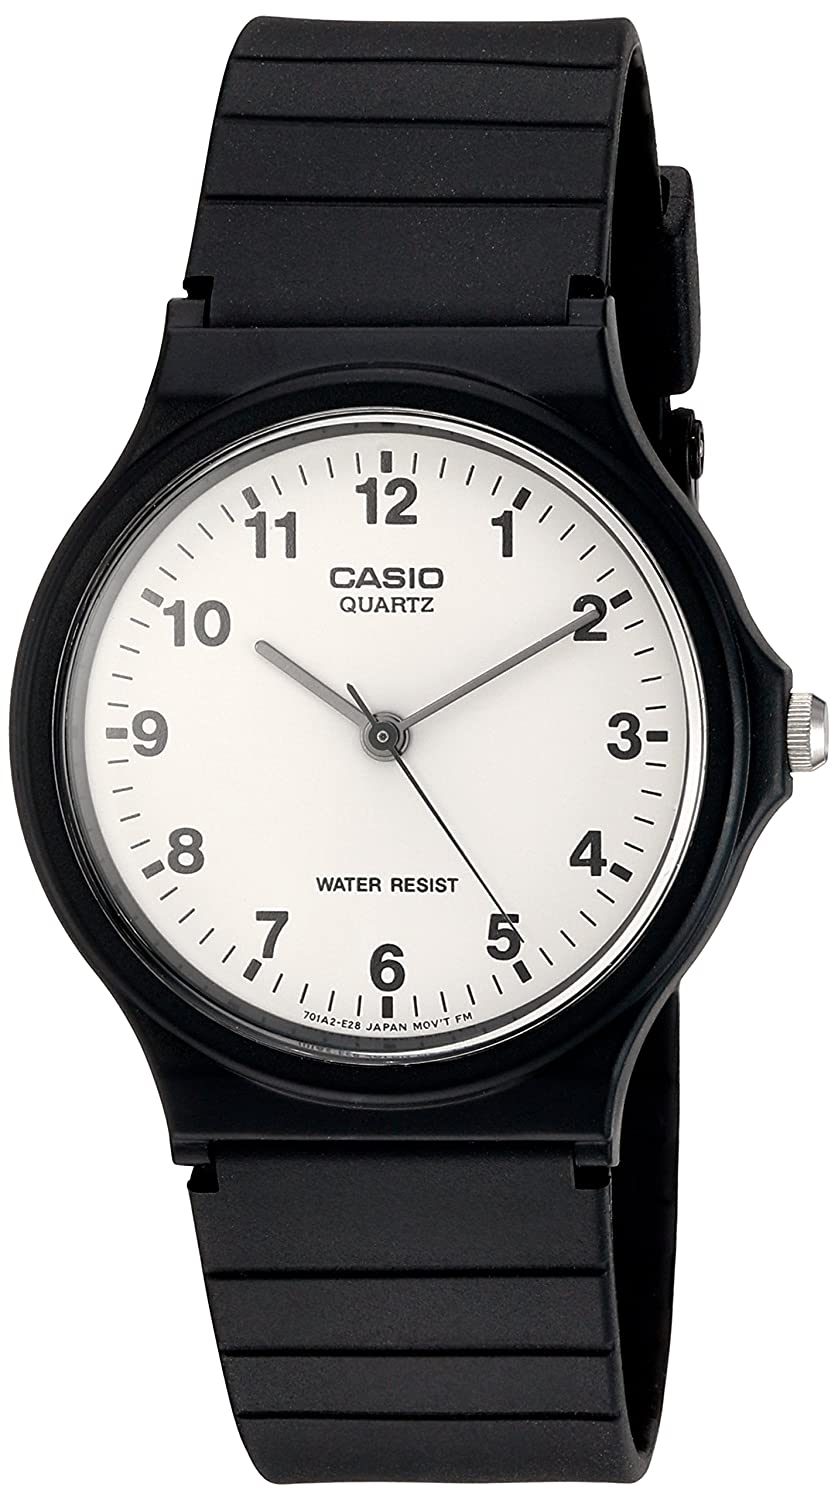 Reloj Casio Collection Unisex Analógico con Correa de Resina